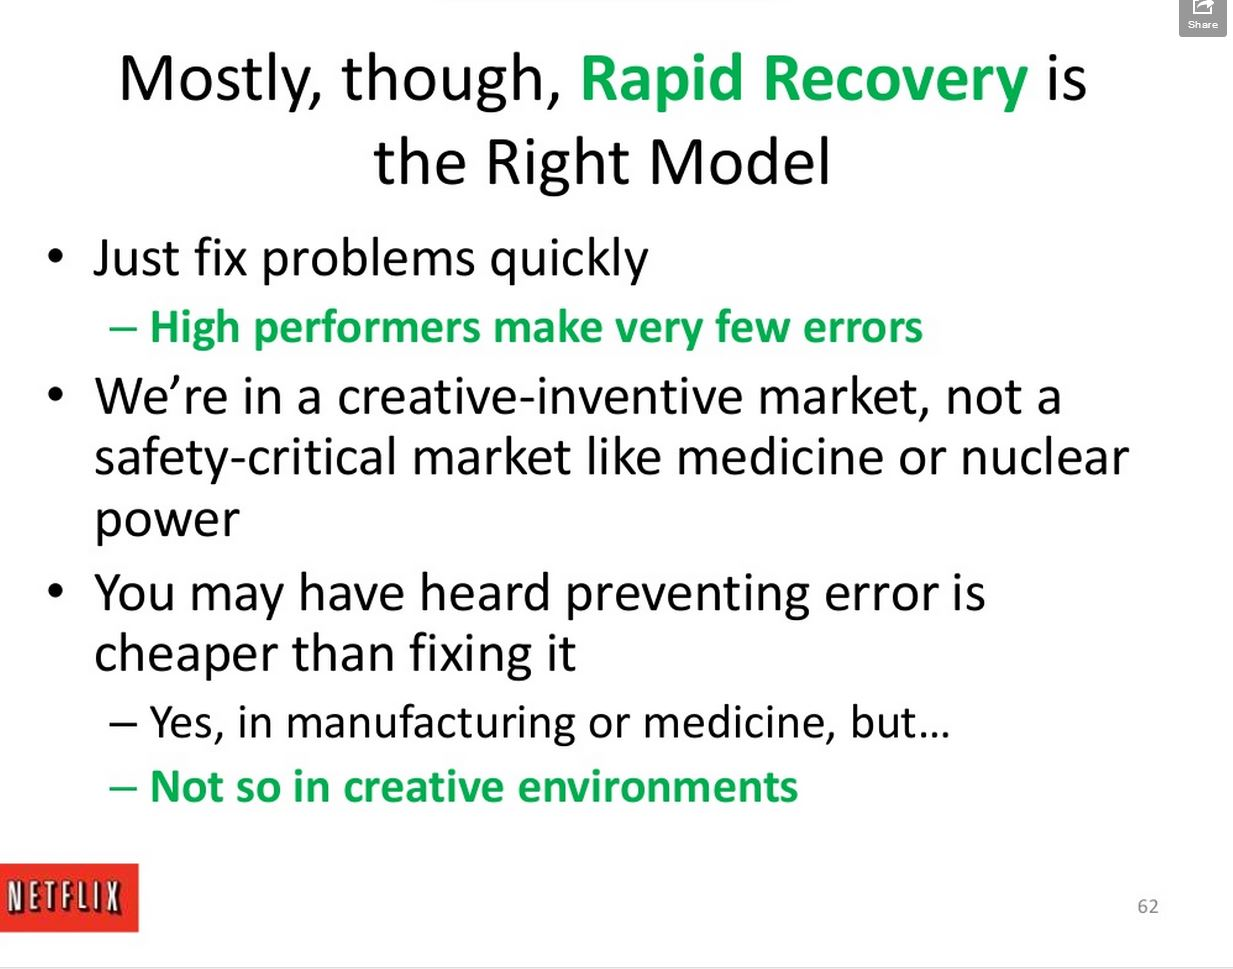 it is better to be flexible enough to recover from a problem rather than having rules to prevent them really caught me off guard and in the slides